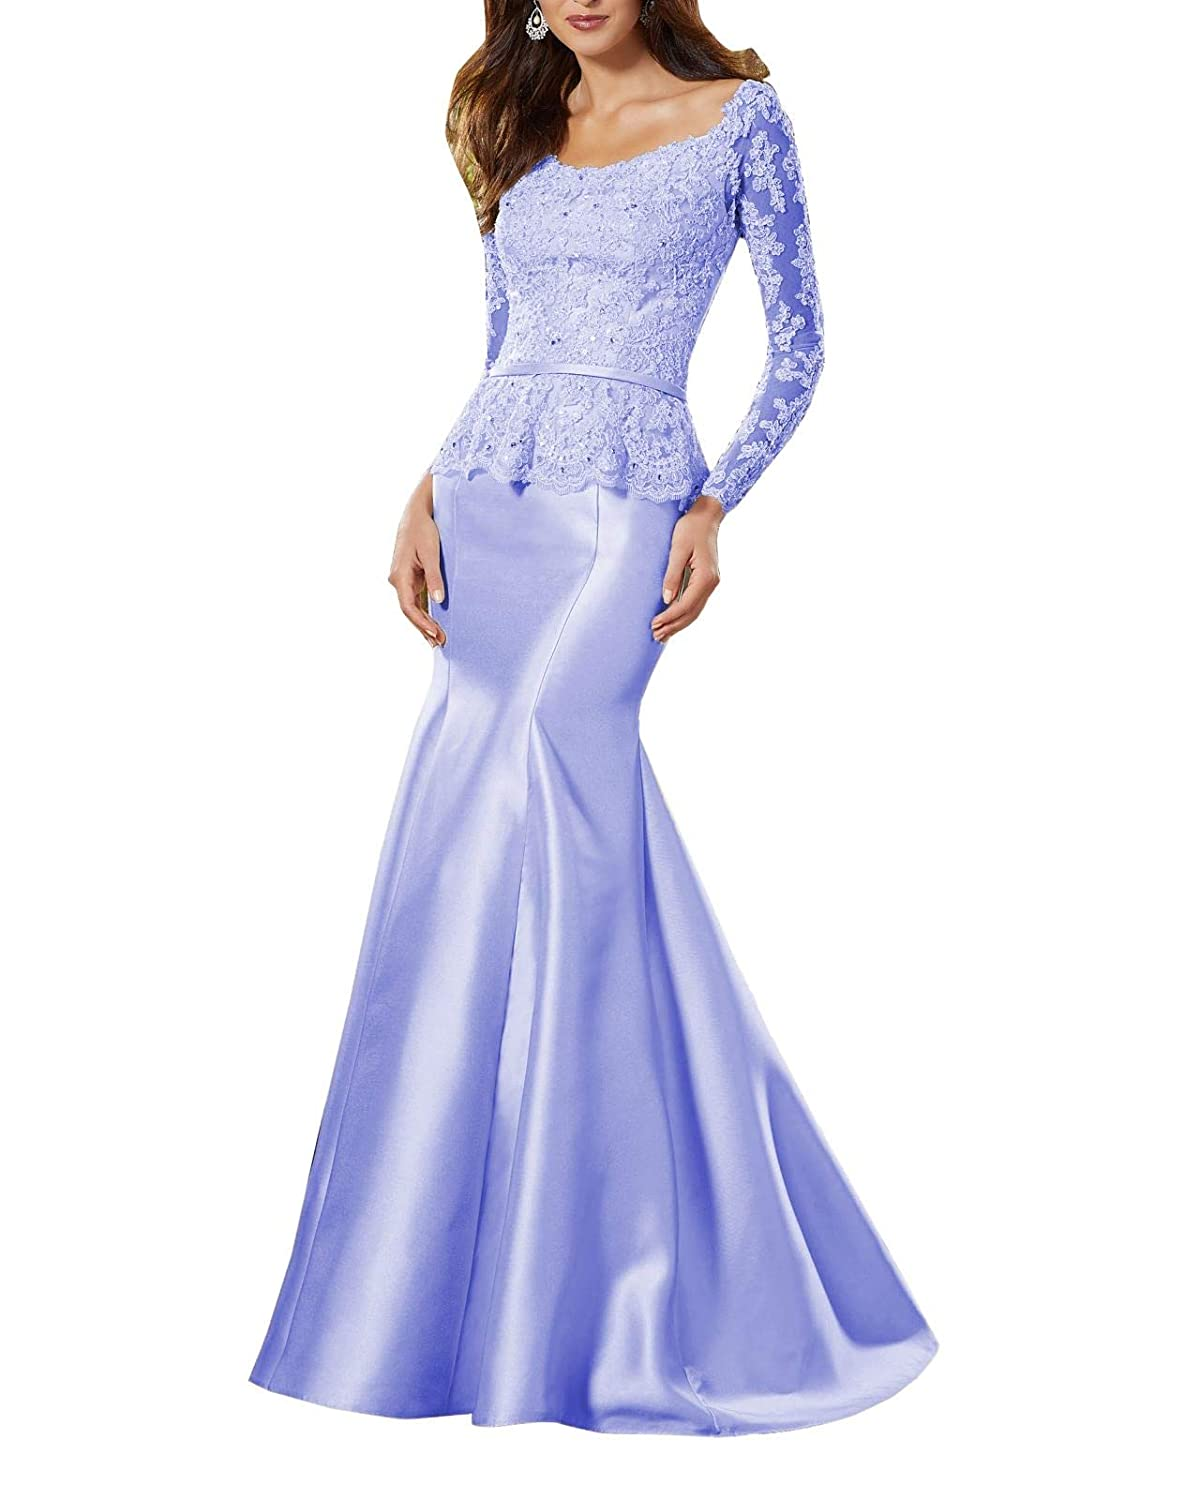 Mediumpurple Wanshaqin Women's Heavy Beaded Lace Formal Evening Gown Stunning Silk Party Dress with Empire Waist